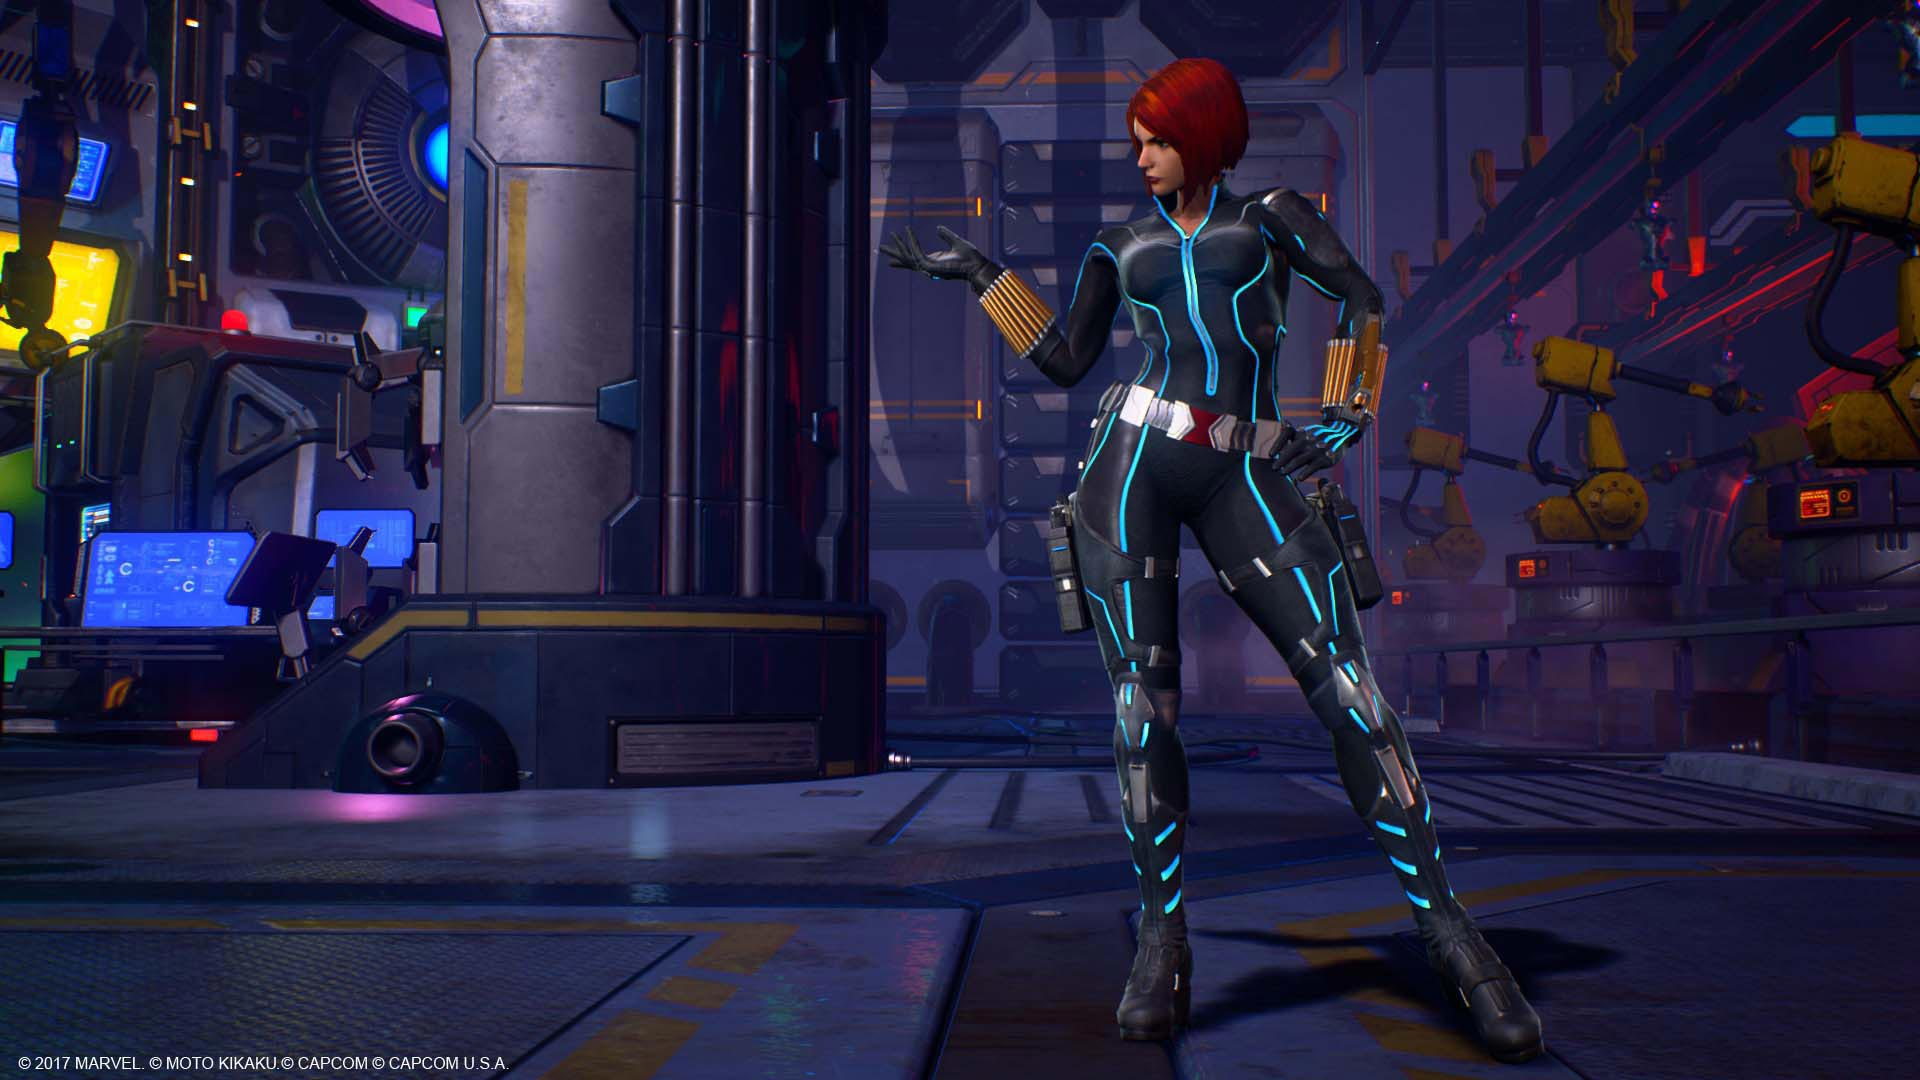 Venom, Black Widow, and Winter Solider in Marvel vs. Capcom: Infinite screenshots 7 out of 13 image gallery